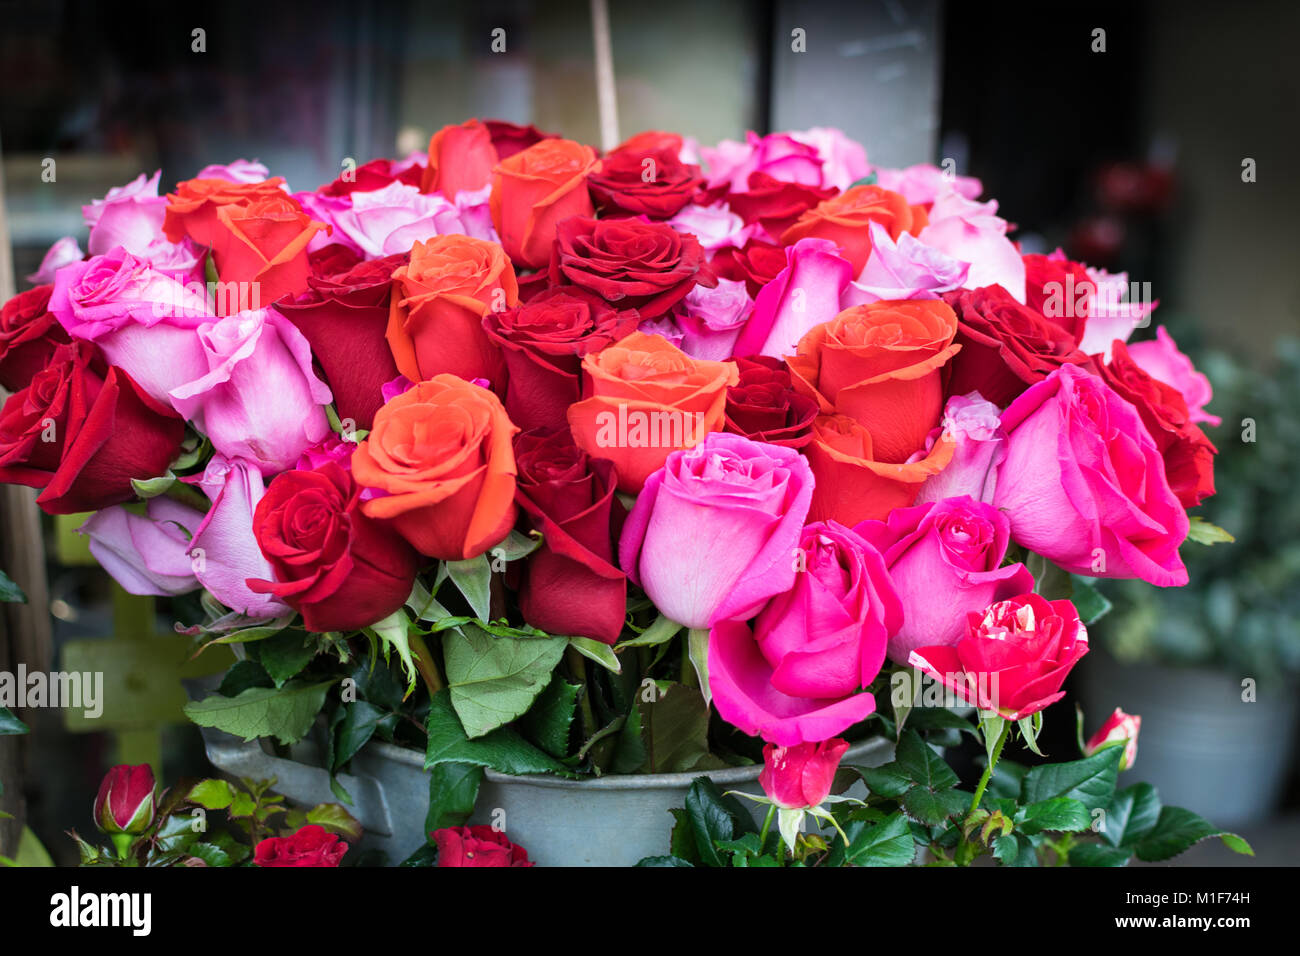 Beautiful flowers ready for valentines bouquets of brightly colored beautiful flowers ready for valentines bouquets of brightly colored flower arrangements izmirmasajfo